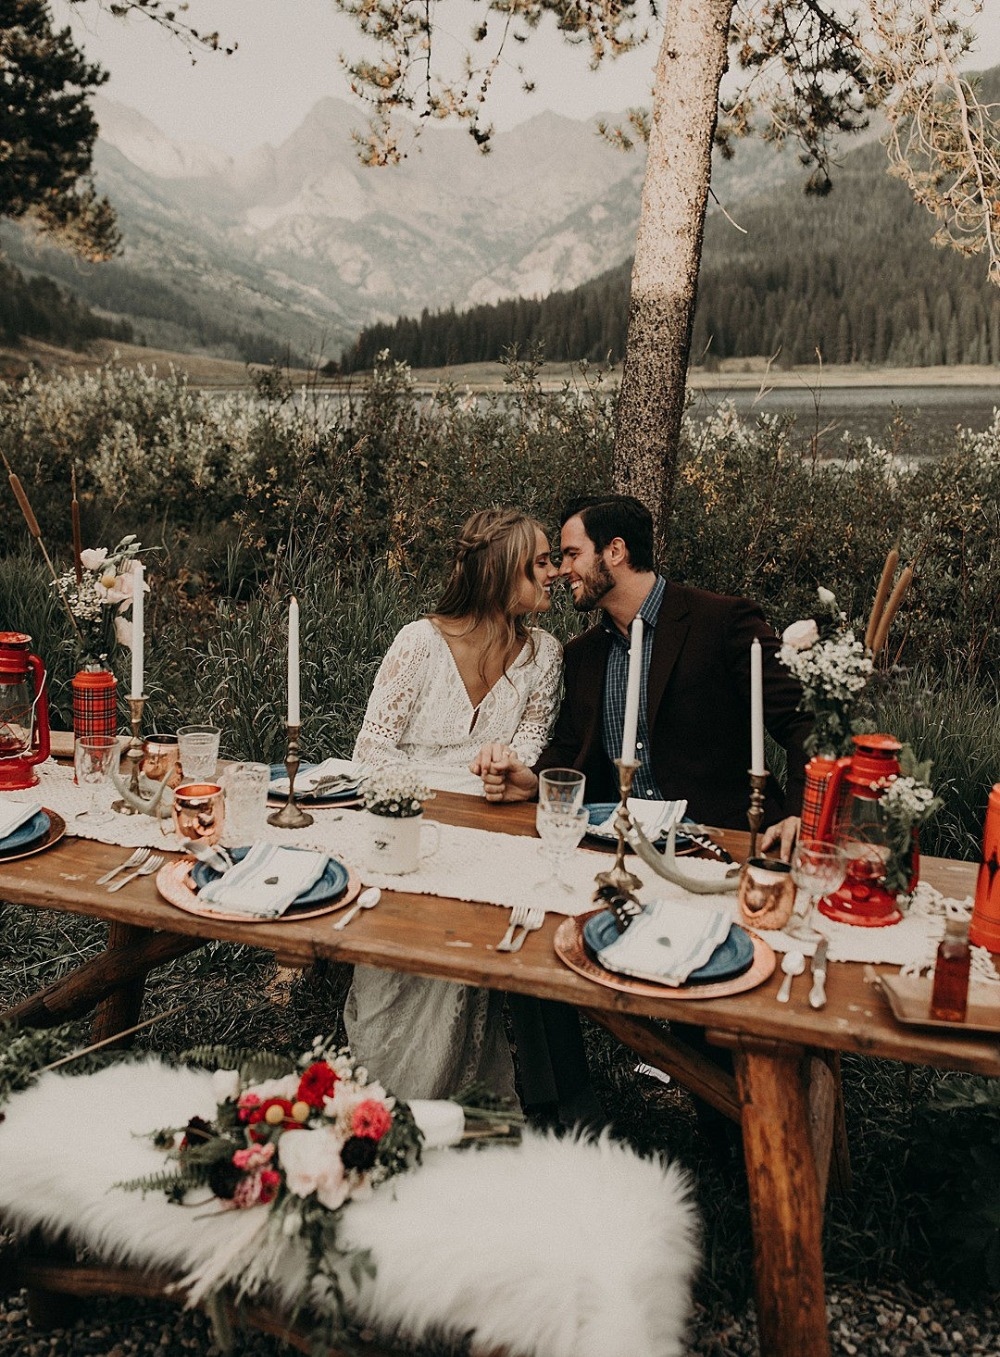 Wes Anderson themed wedding ideas